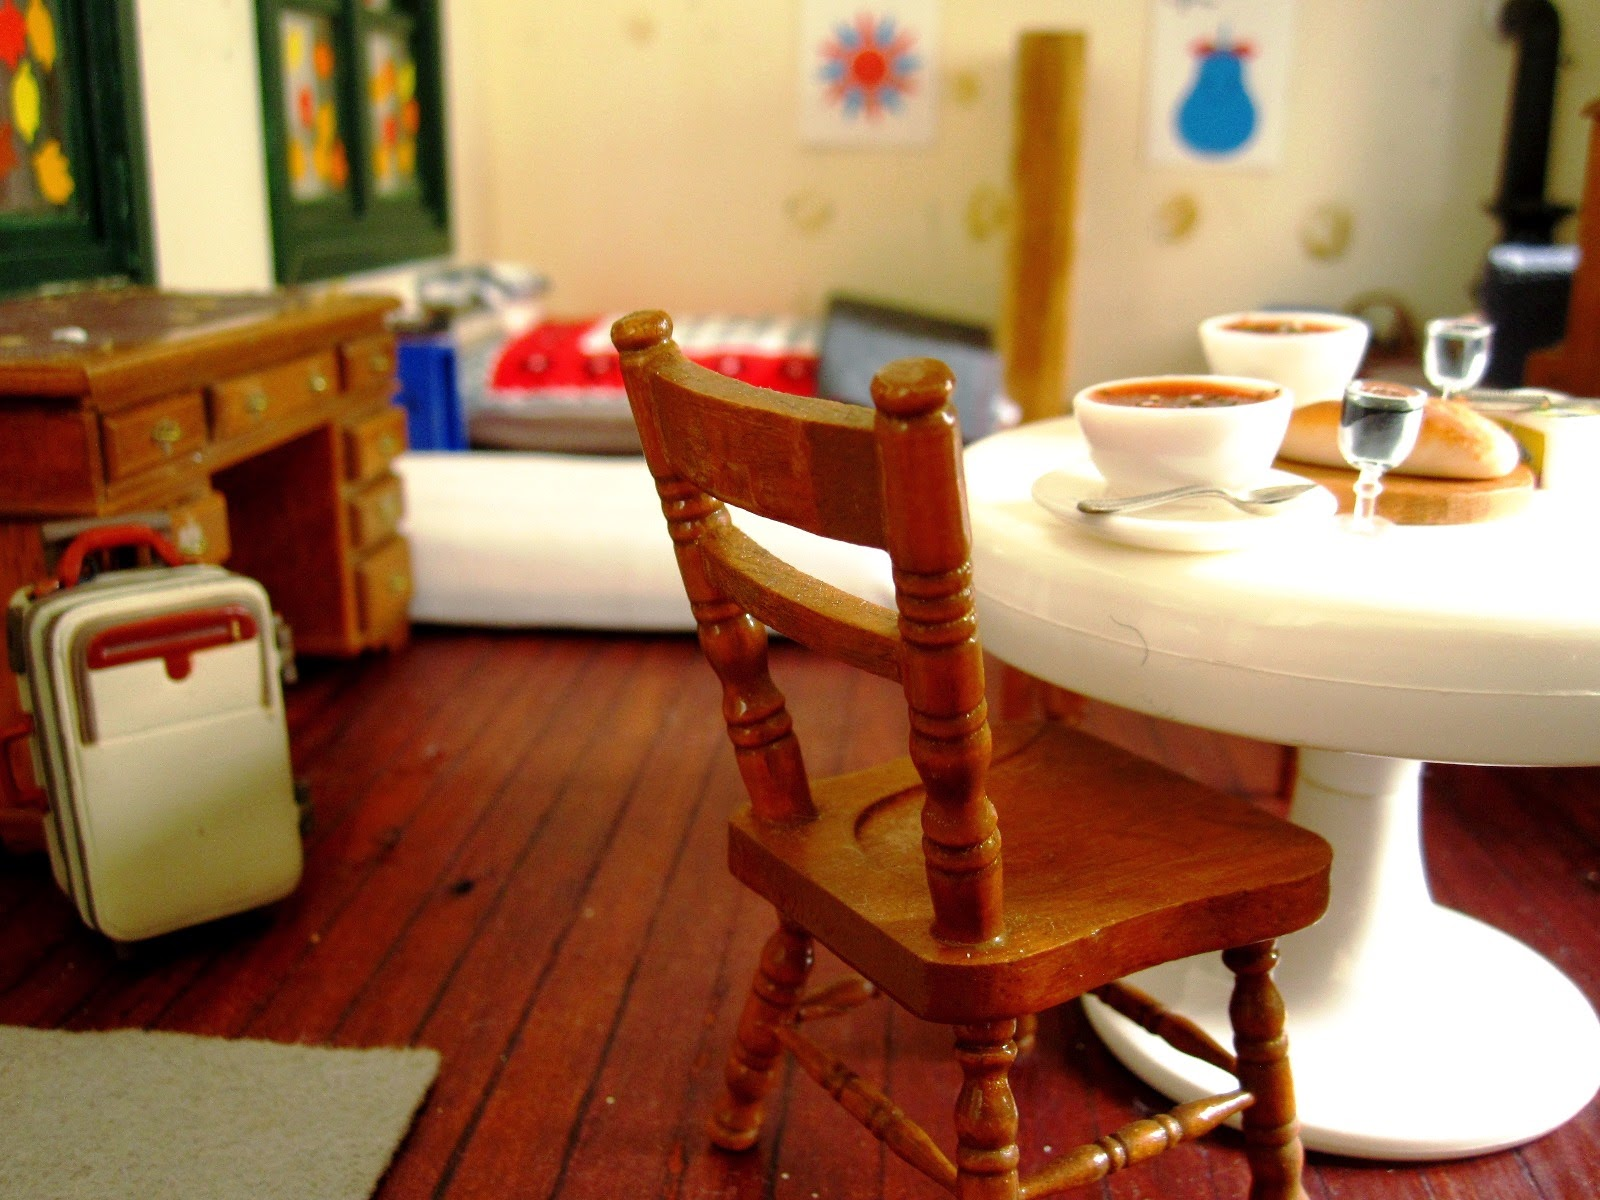 Interior of a miniature holiday home with a suitcase in one corner and a table set with two bowls of soup and glasses of wine, and a loaf of crusty bread in the other.